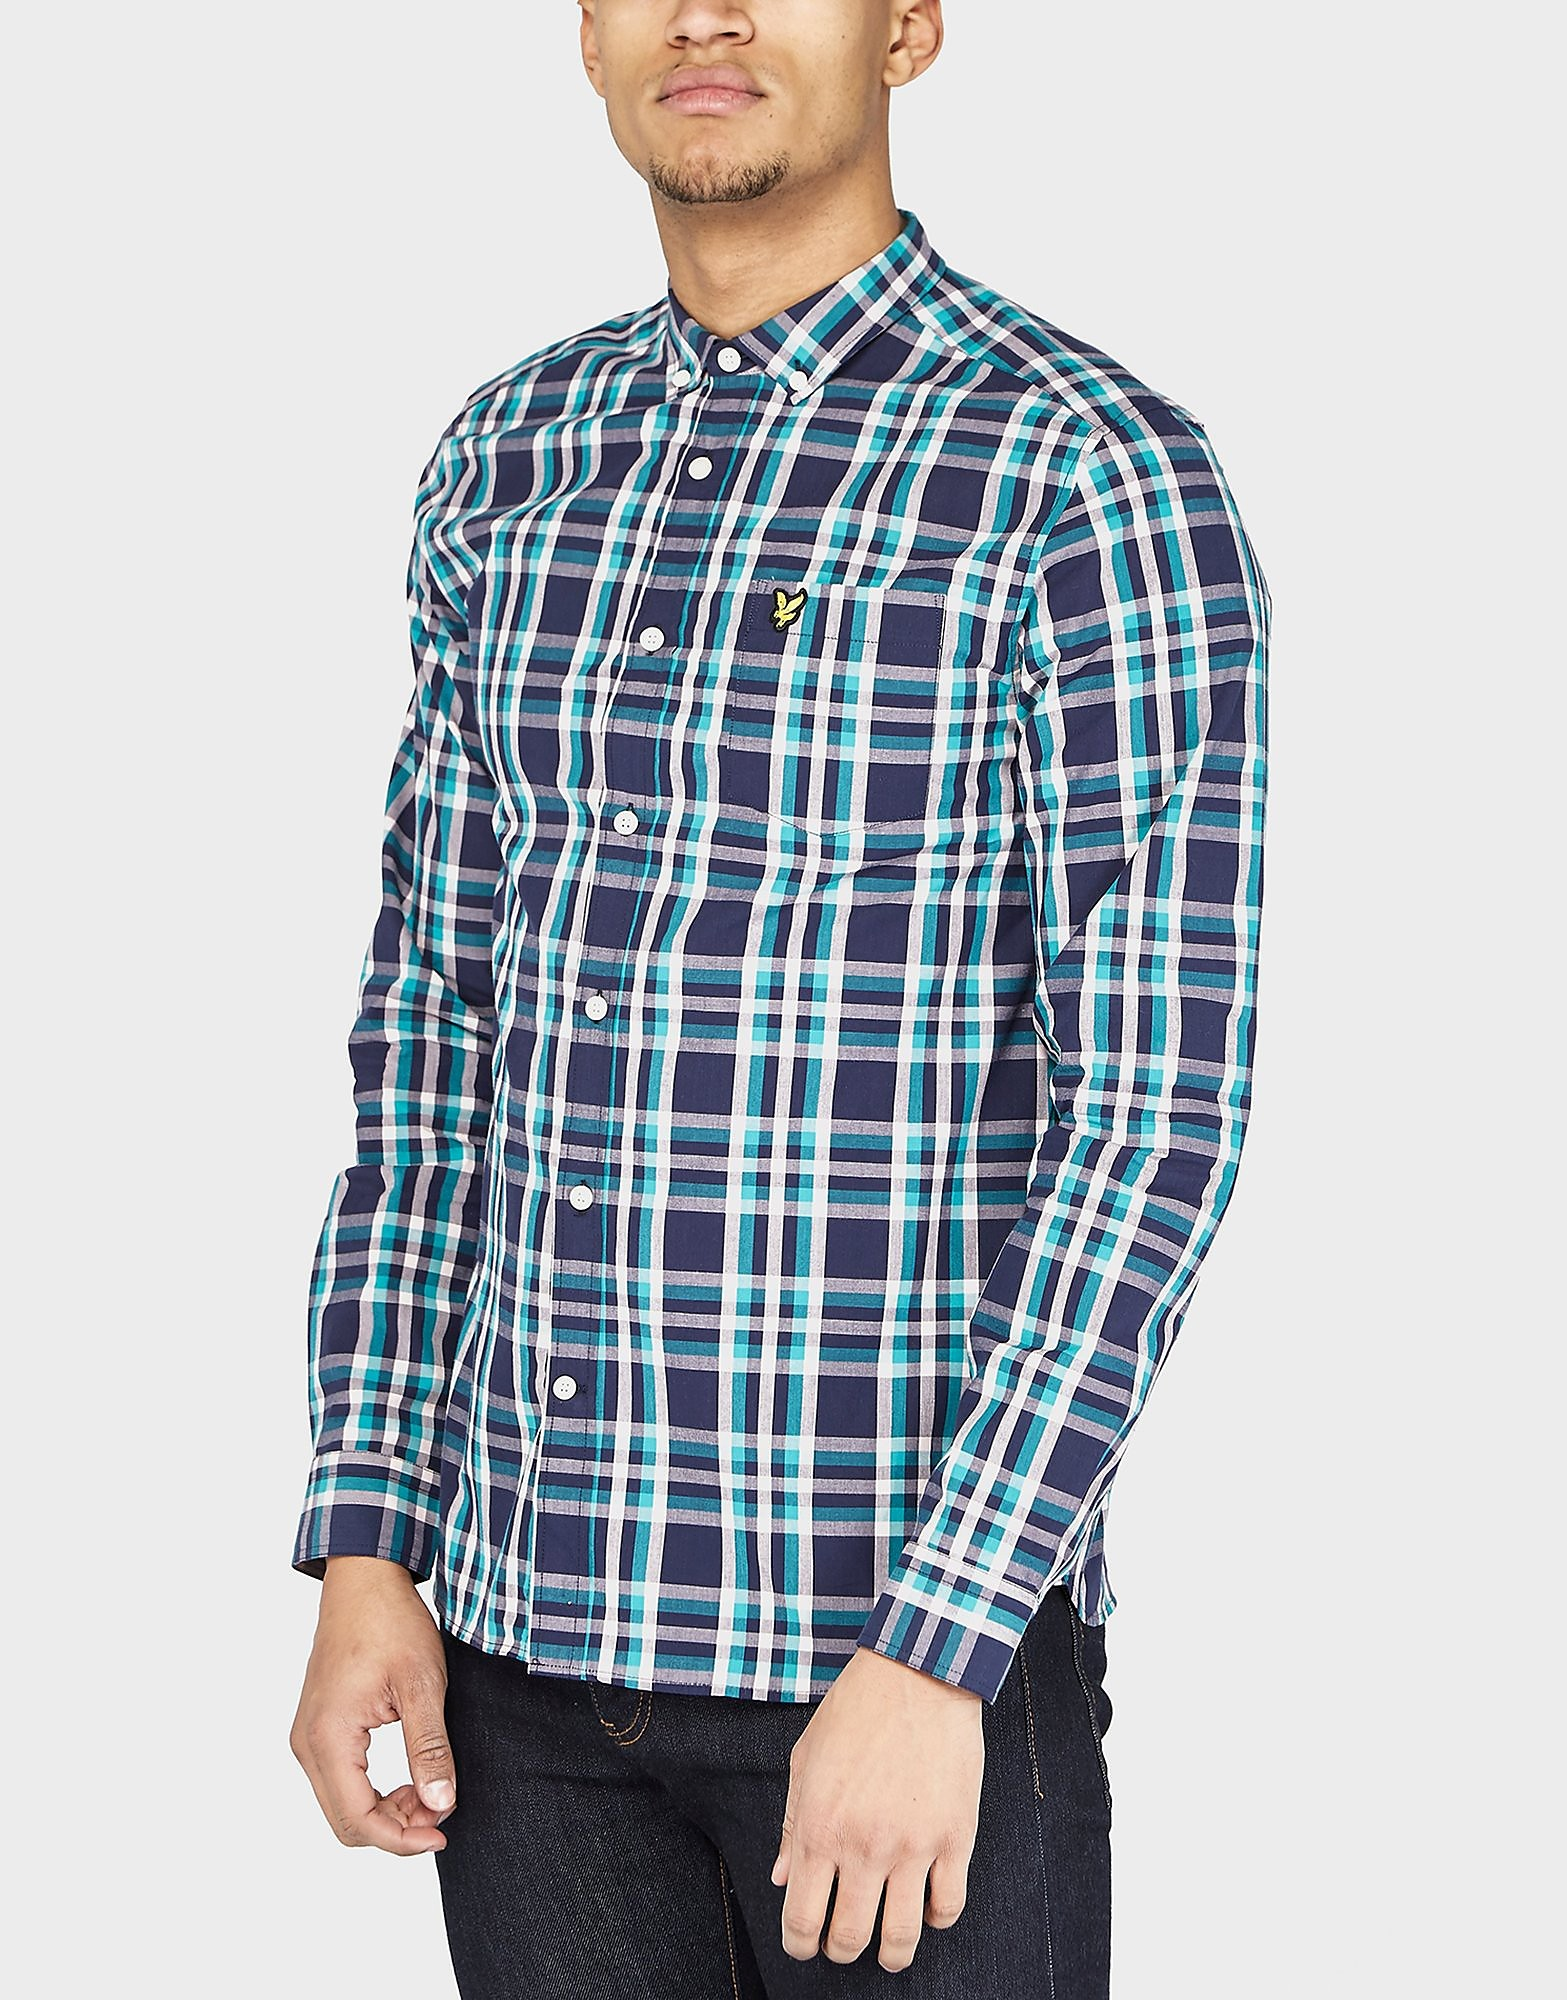 Lyle & Scott Multi Check Shirt